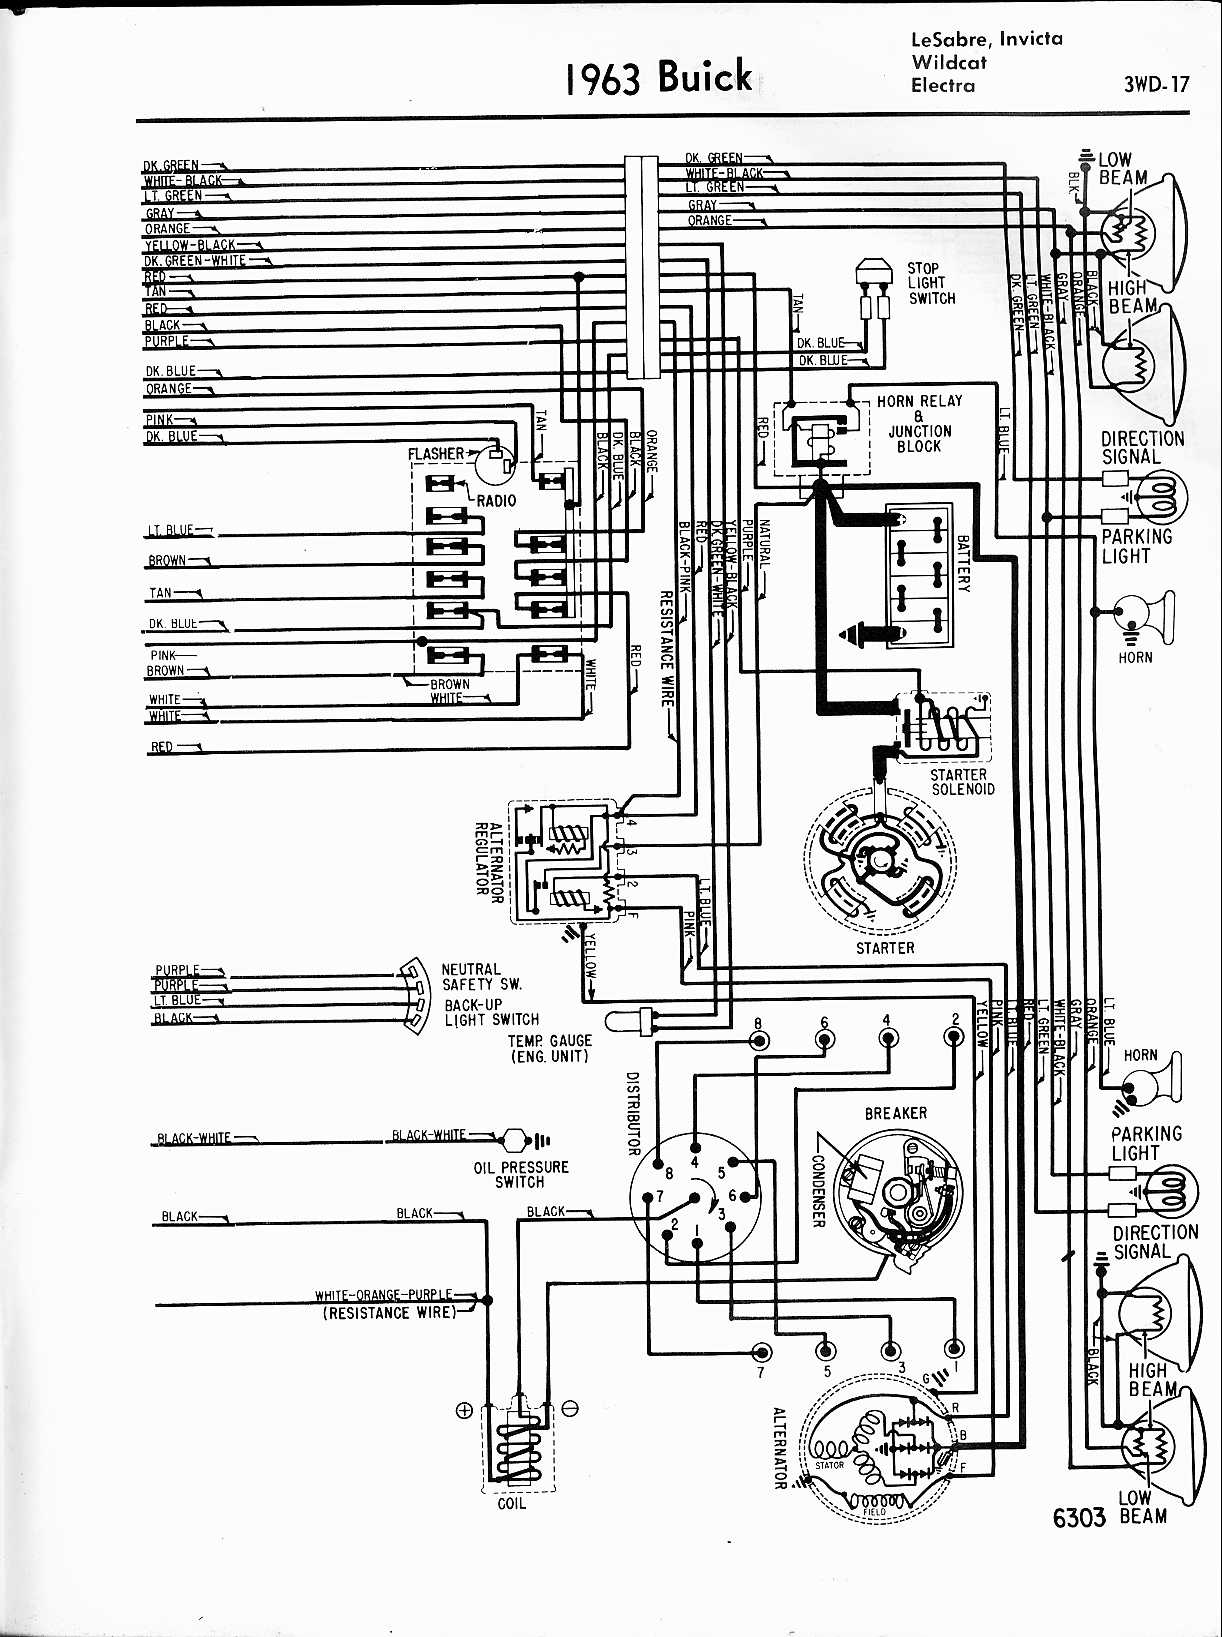 hight resolution of wildcat wiring diagram best site wiring harness 65 buick riviera gs 67 buick riviera